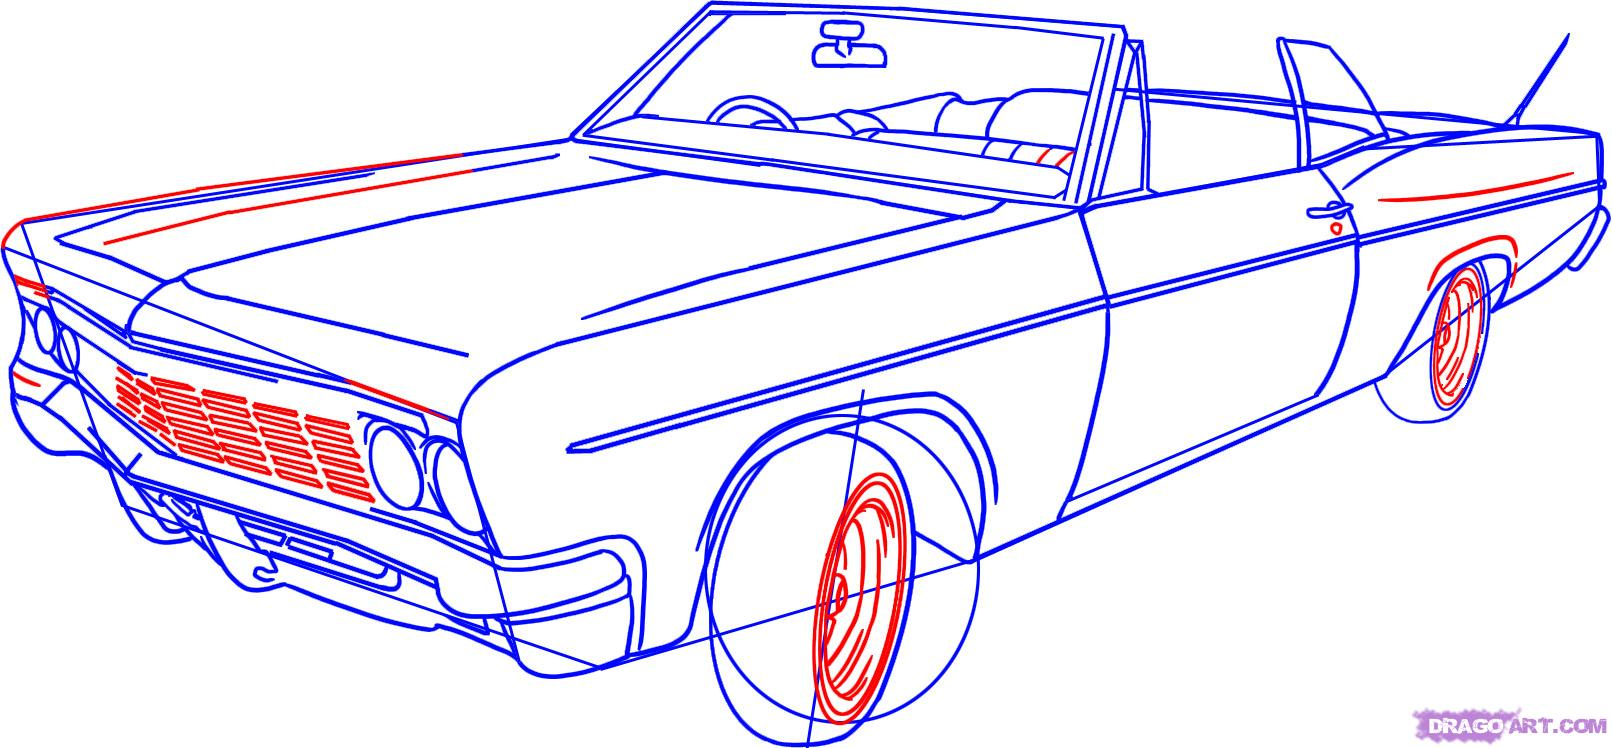 Drawn vehicle chevrolet Lowrider step to How Draw